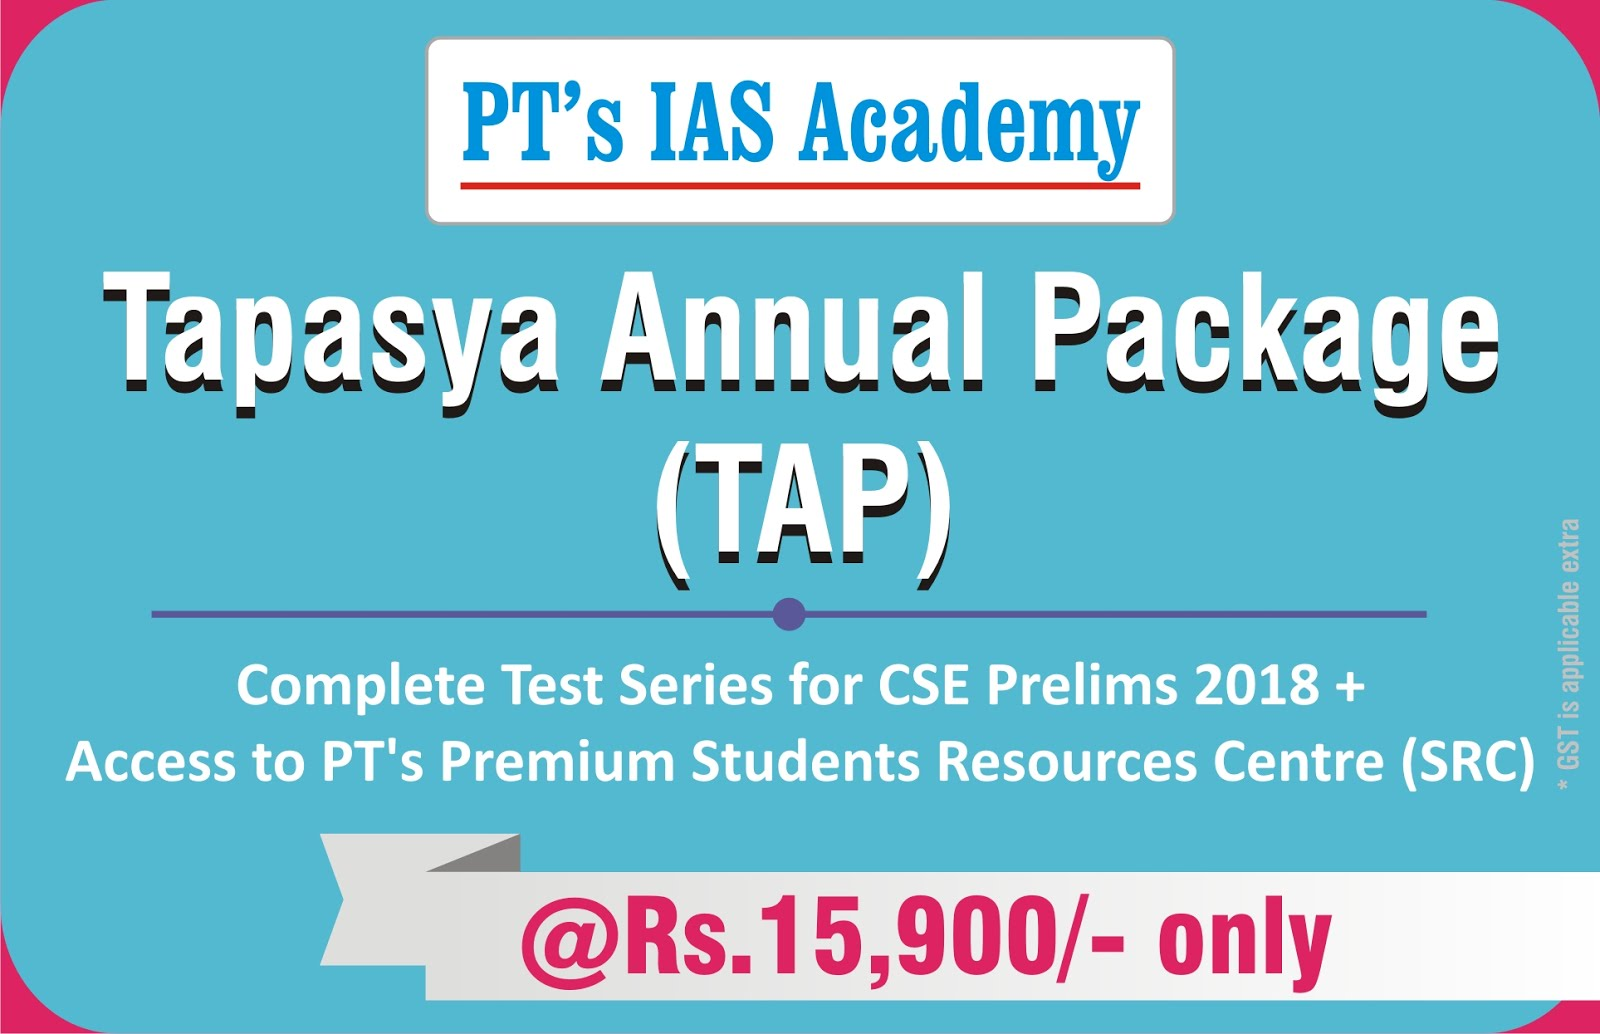 T A P - Tapasya Annual Package